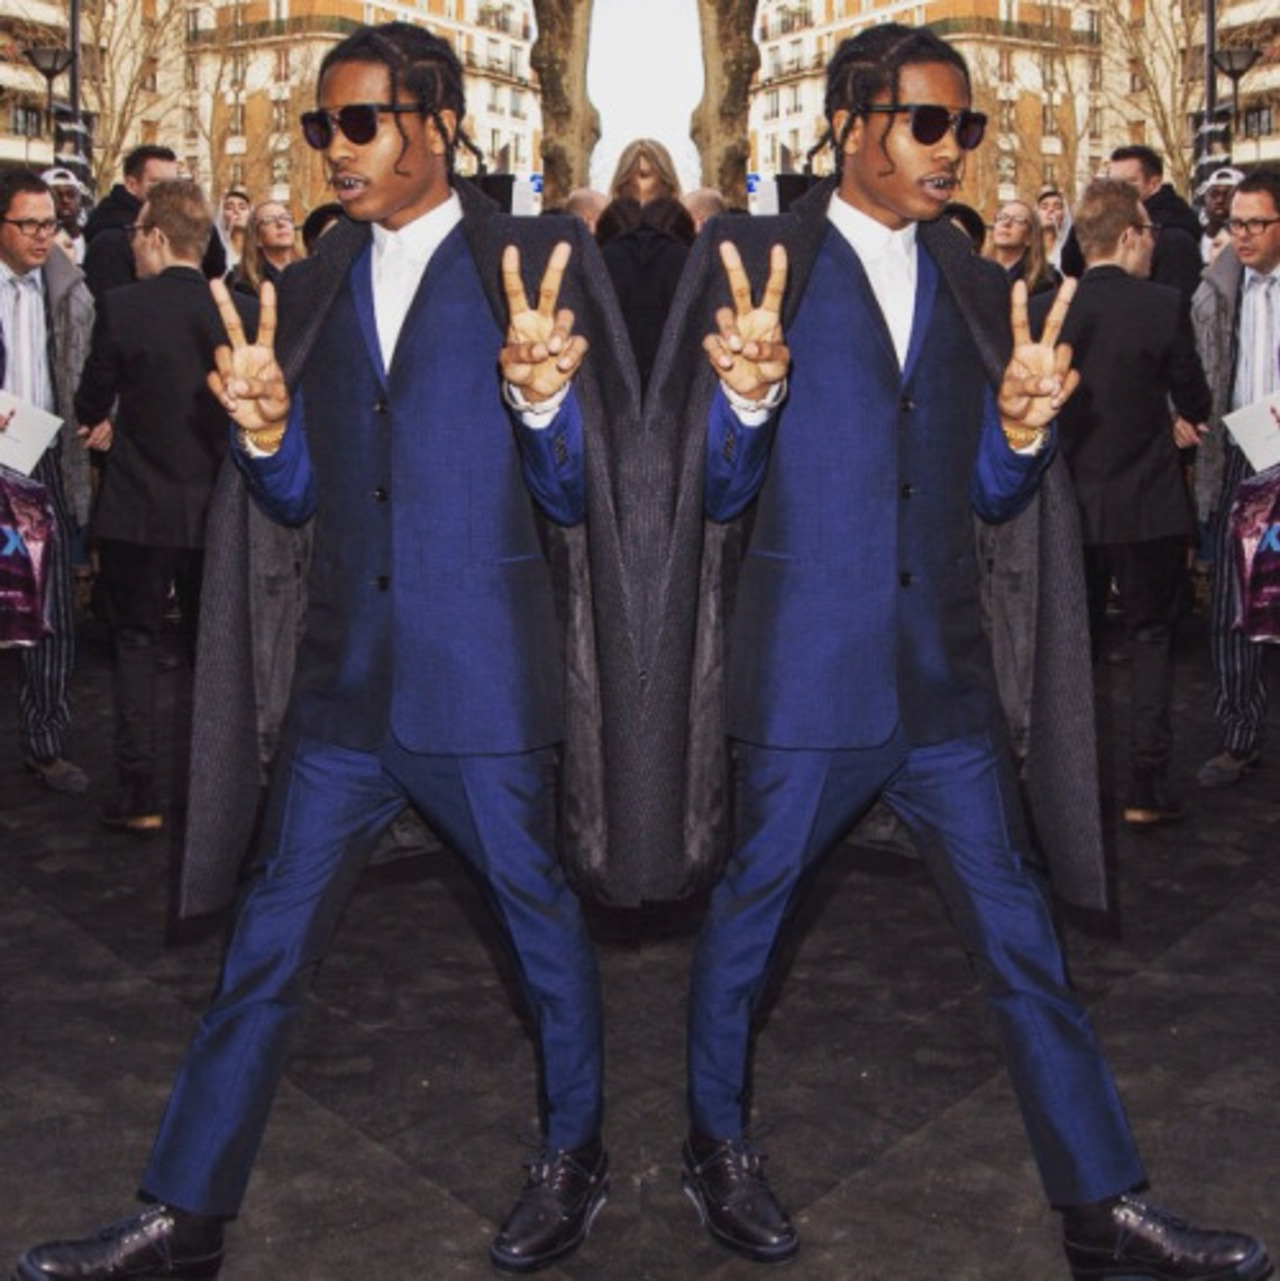 One of #SachaJenkins' interview subjects in #FreshDressed, you'll hear @asvpxrocky explain his relationship with luxury fashion. Pictured here wearing @Dior Homme.